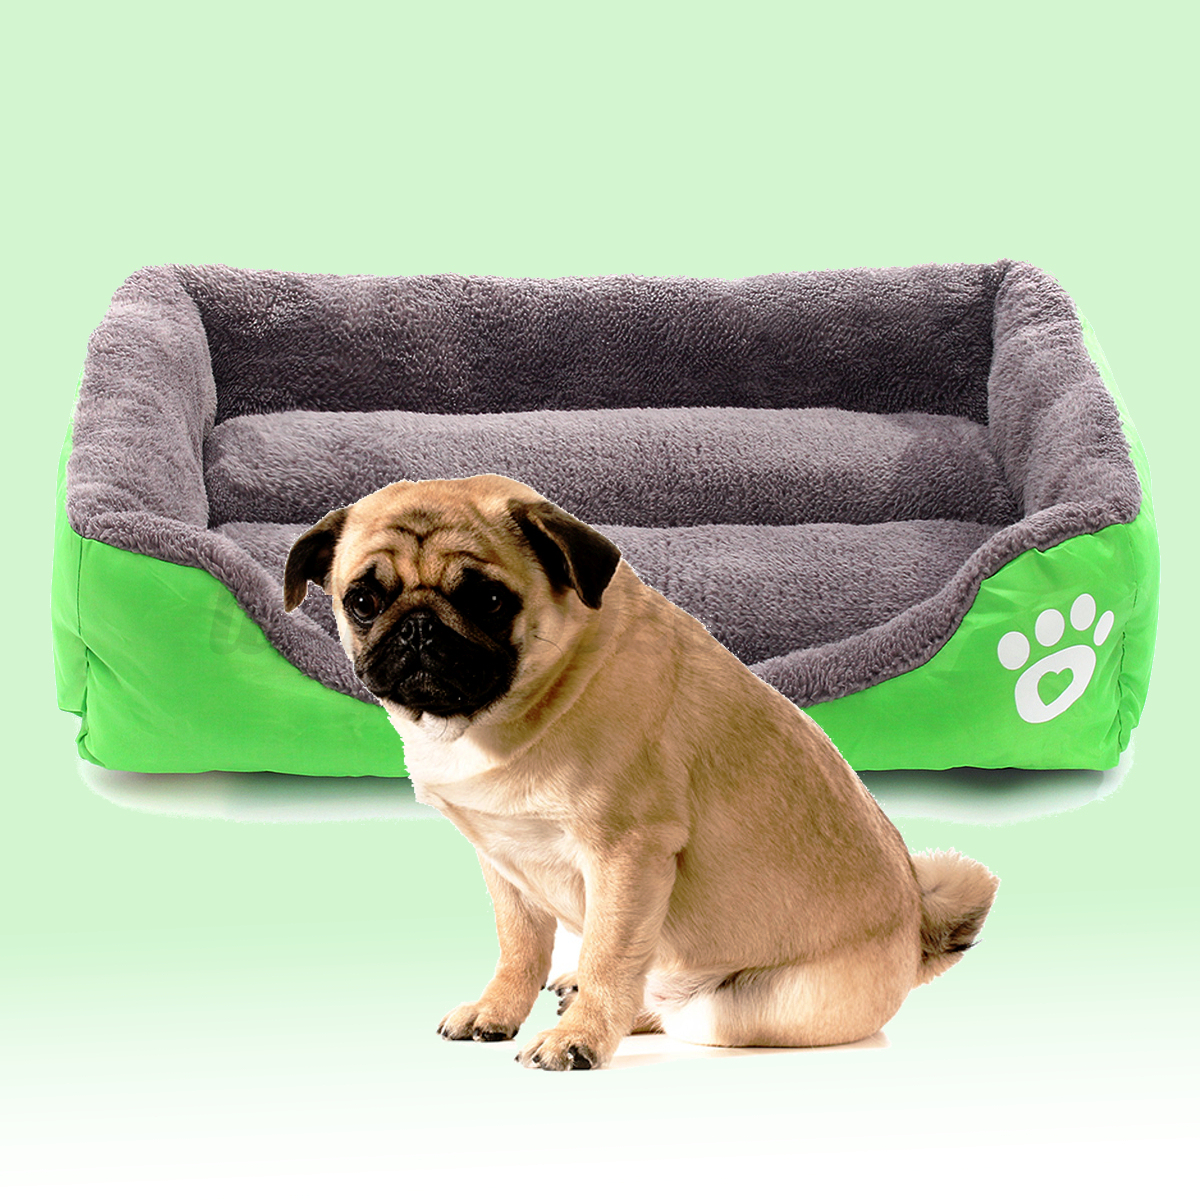 xl xxl xxxl sof de mascotas gato cachorro perro gatito cama cojines grande ebay. Black Bedroom Furniture Sets. Home Design Ideas